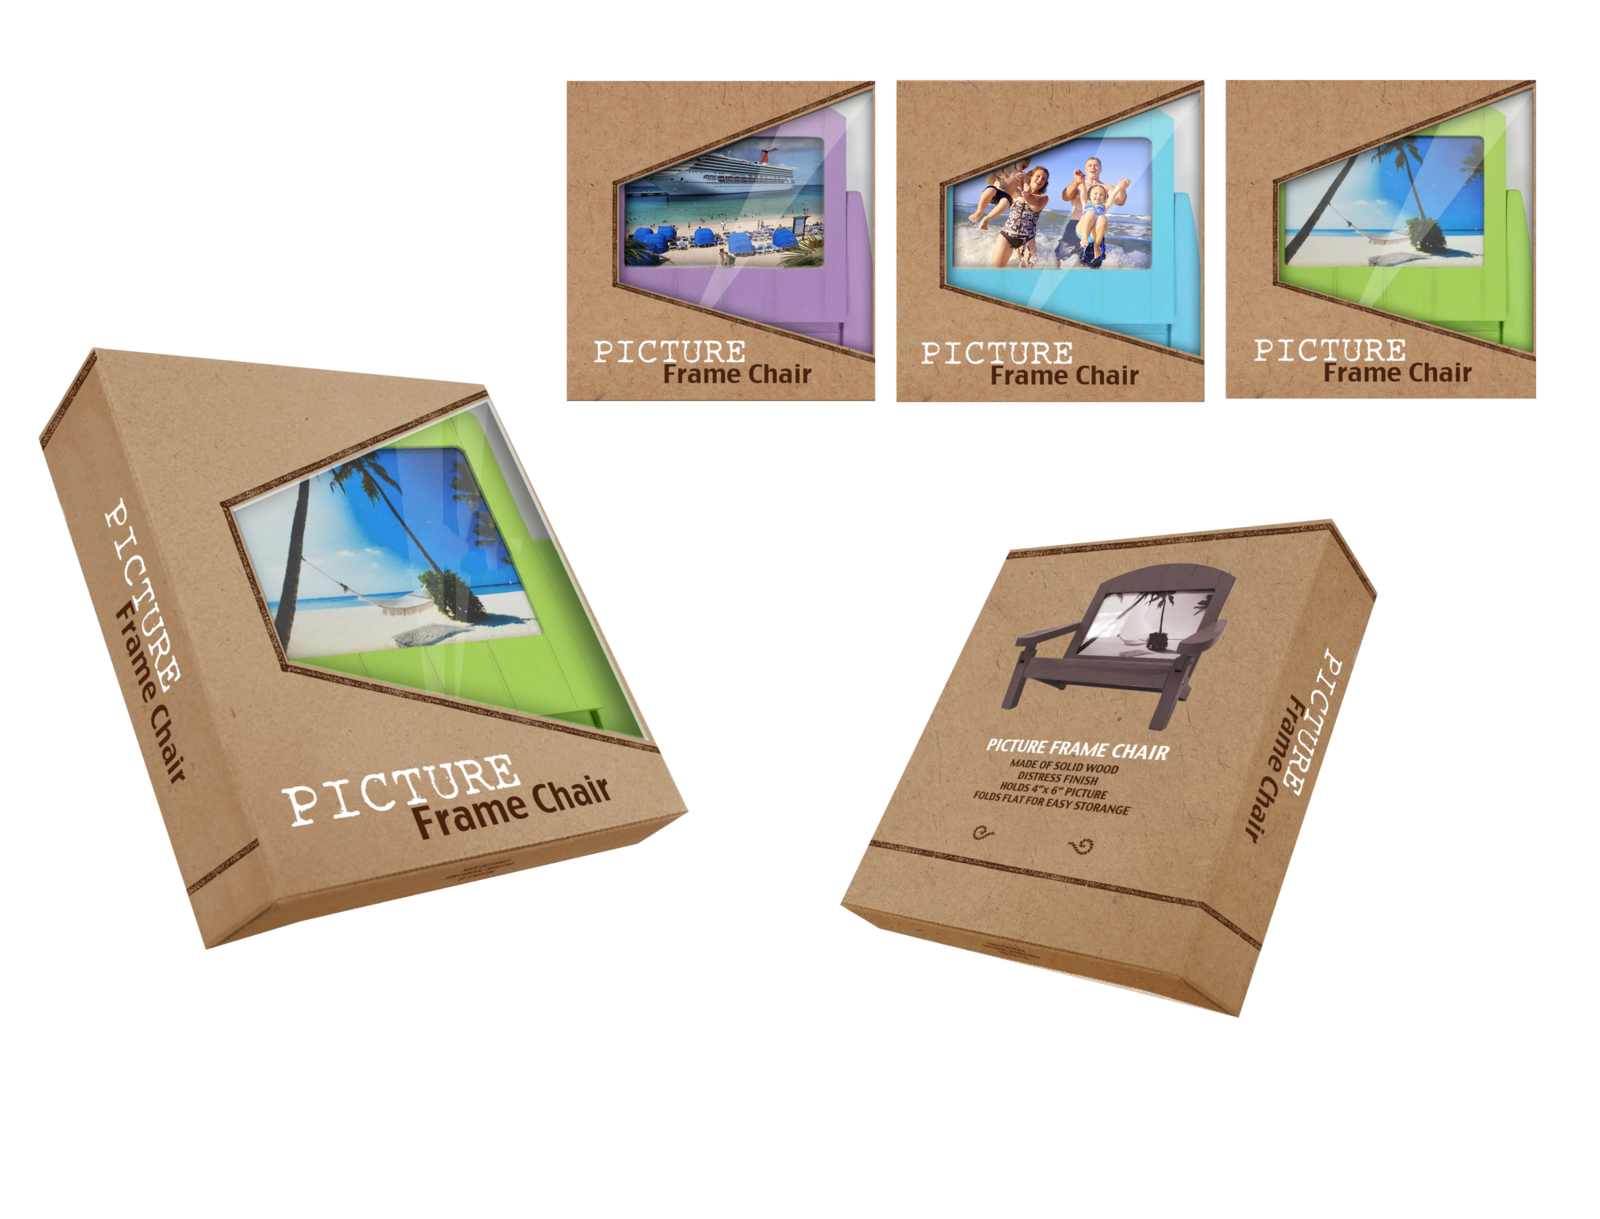 FOLDABLE PICTURE FRAME CHAIR-PACKAGING-PRESENTATION-REV1